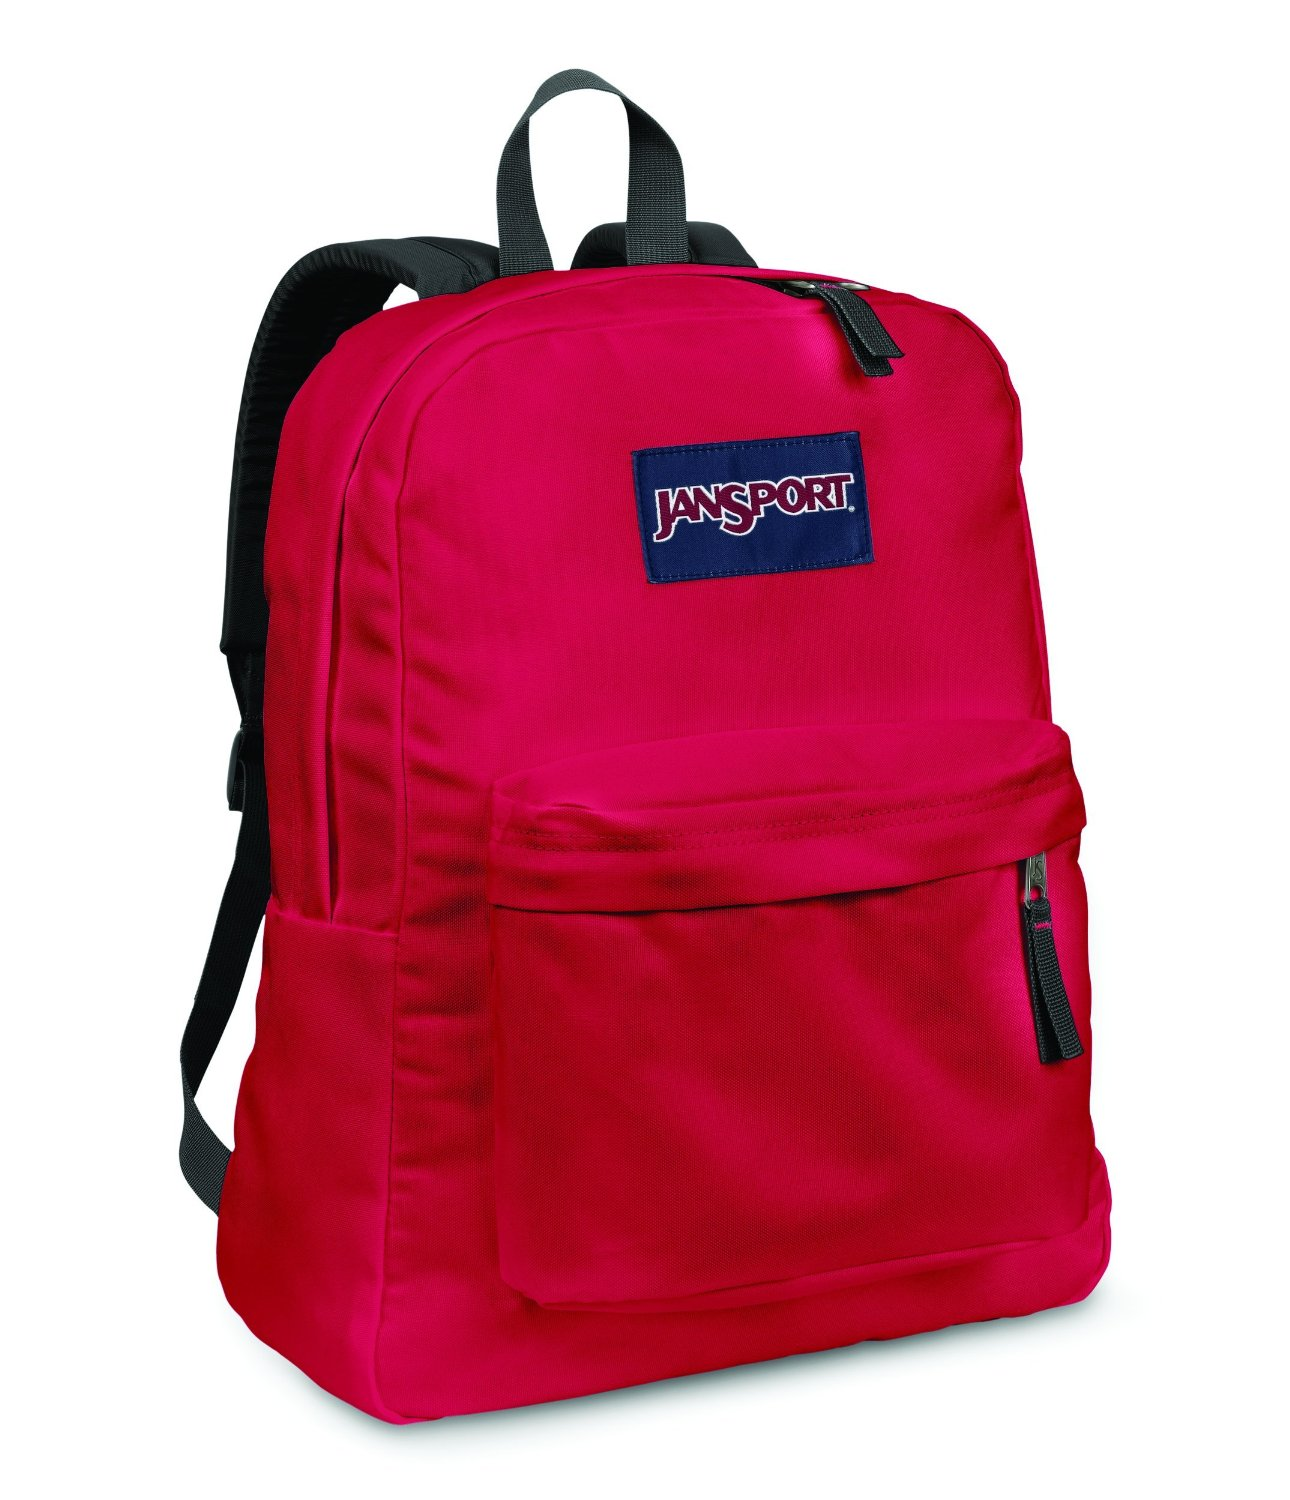 Jansport Backpacks Pink 6BHA3MGD